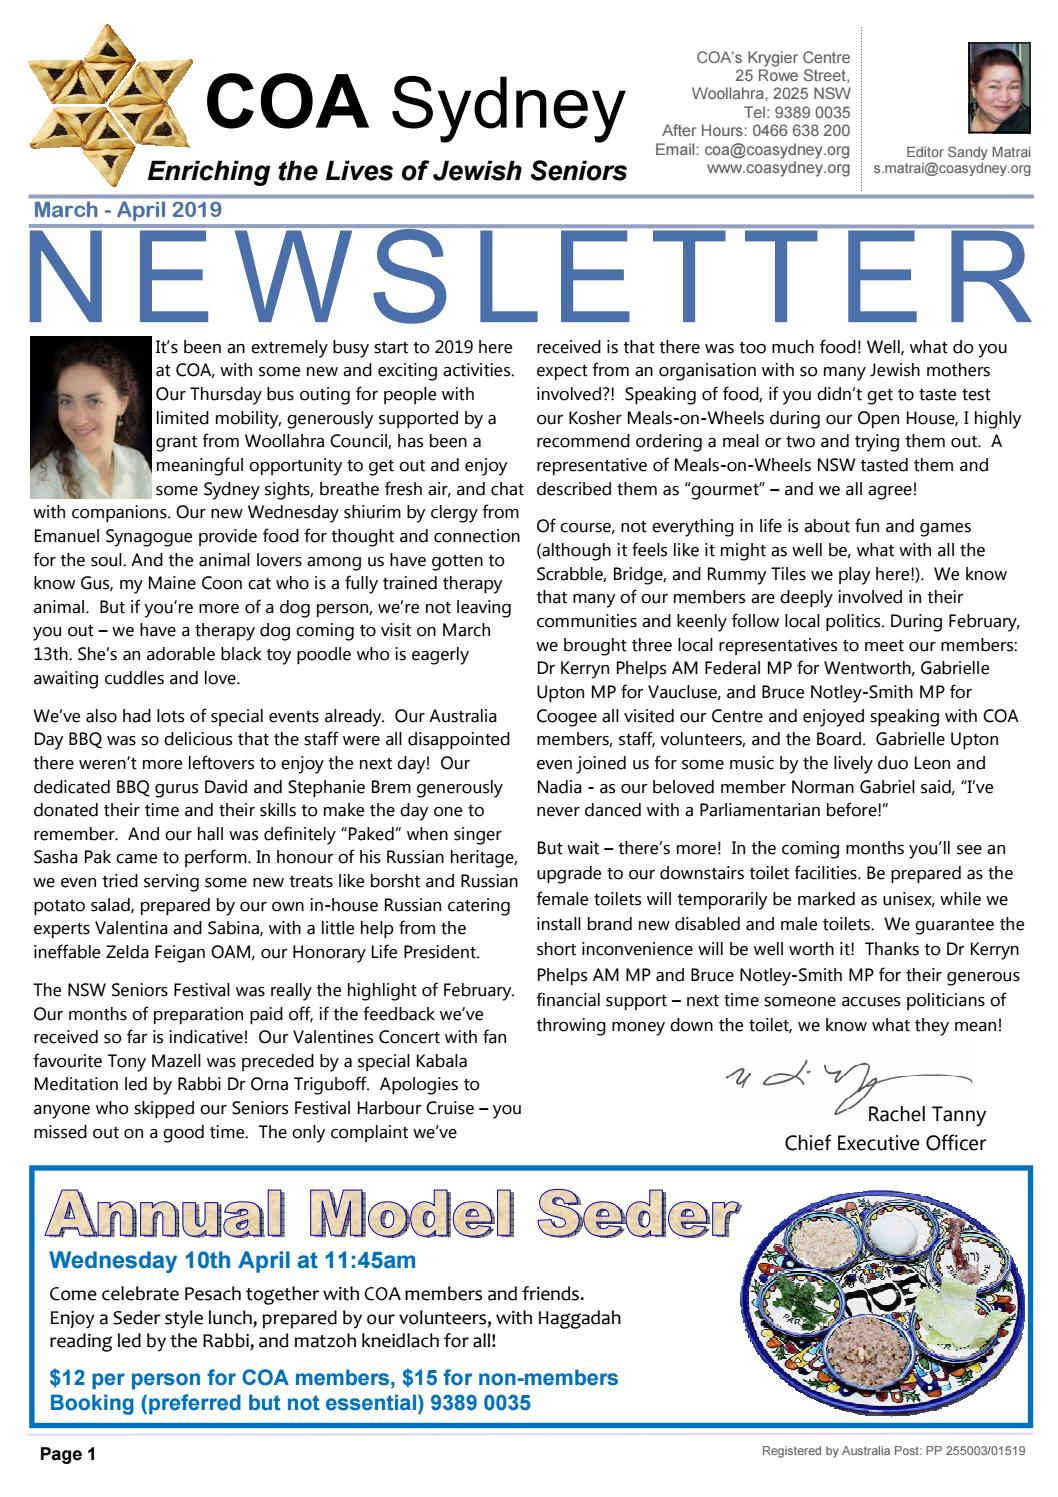 COA Newsletter March - April 2019 by Coa Sydney - issuu